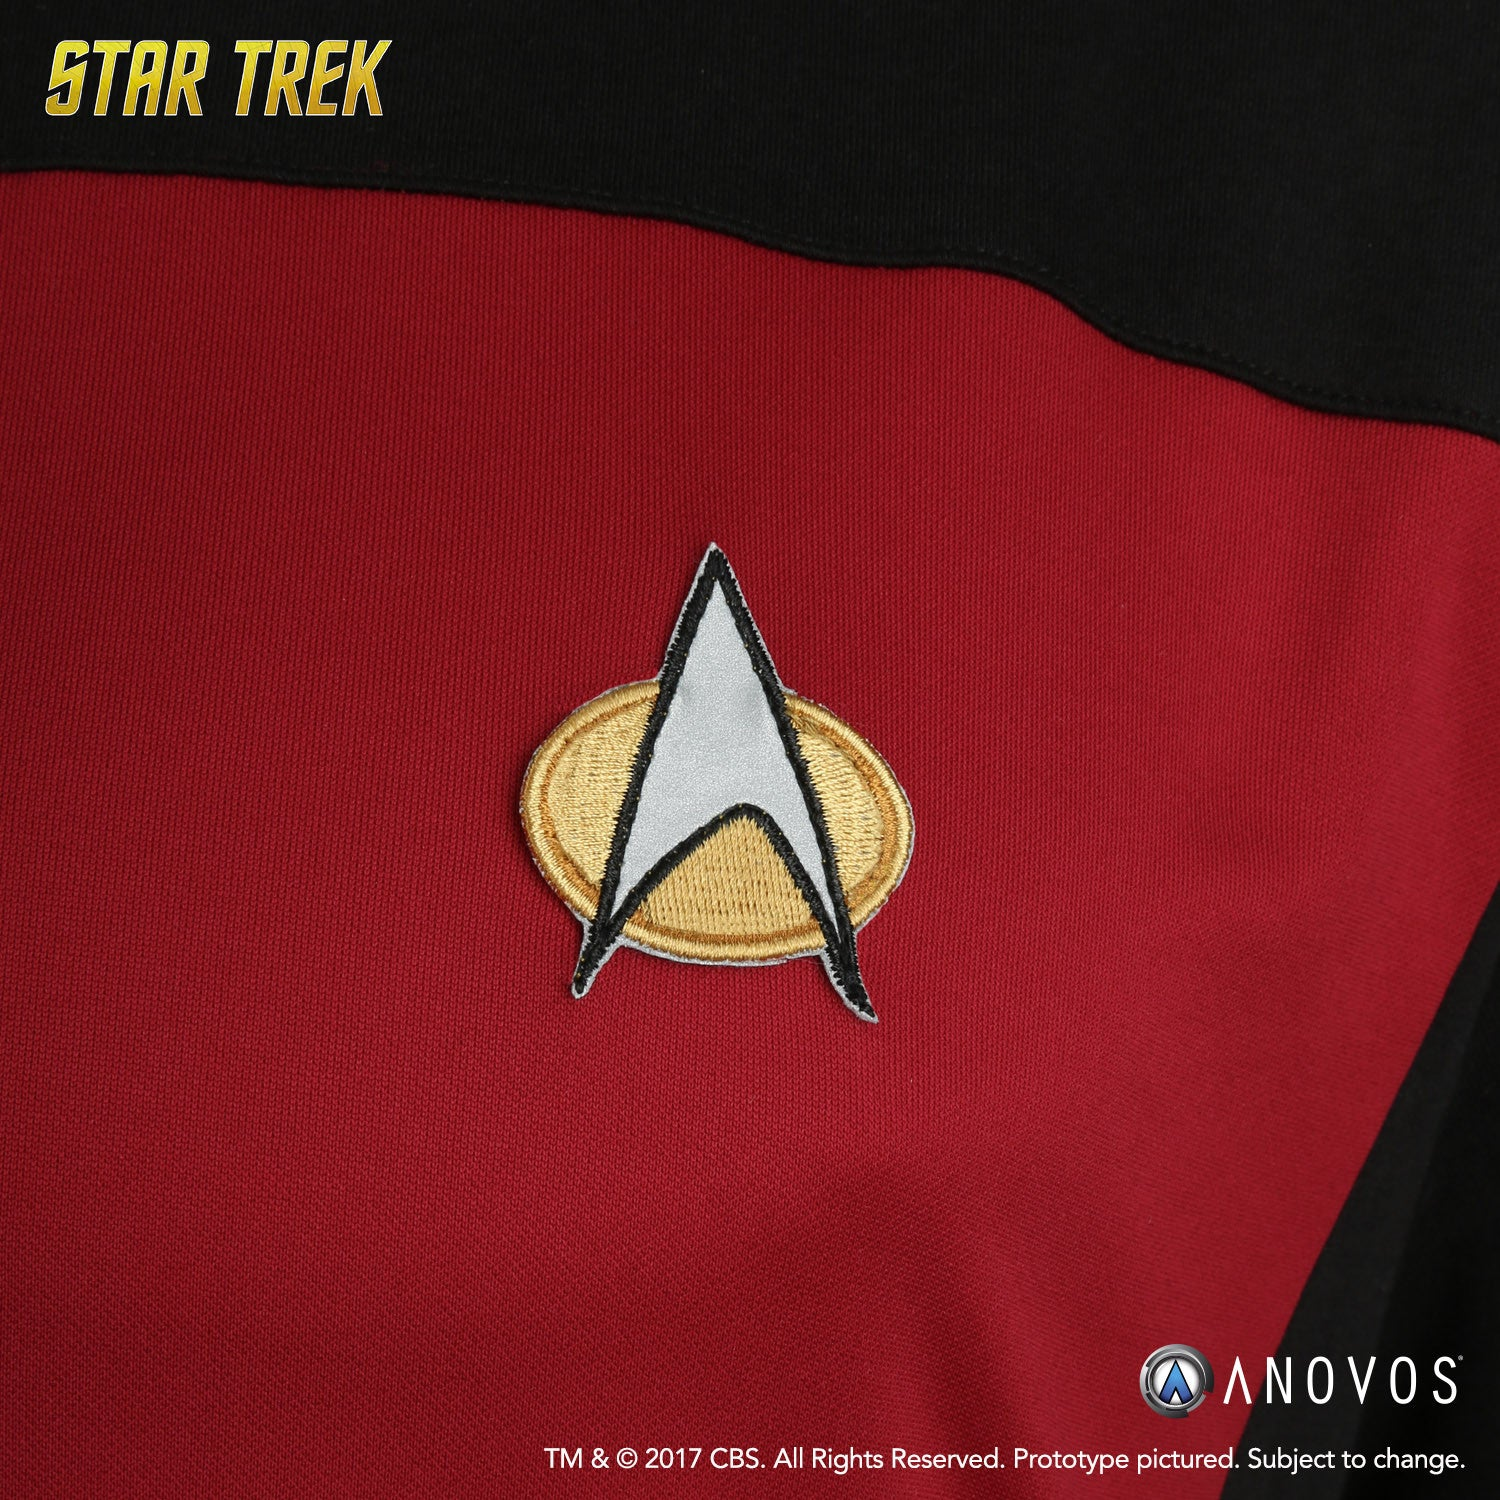 Star trek the next generation shore leave collection uniform star trek the next generation shore leave collection uniform shirt reservation buycottarizona Gallery